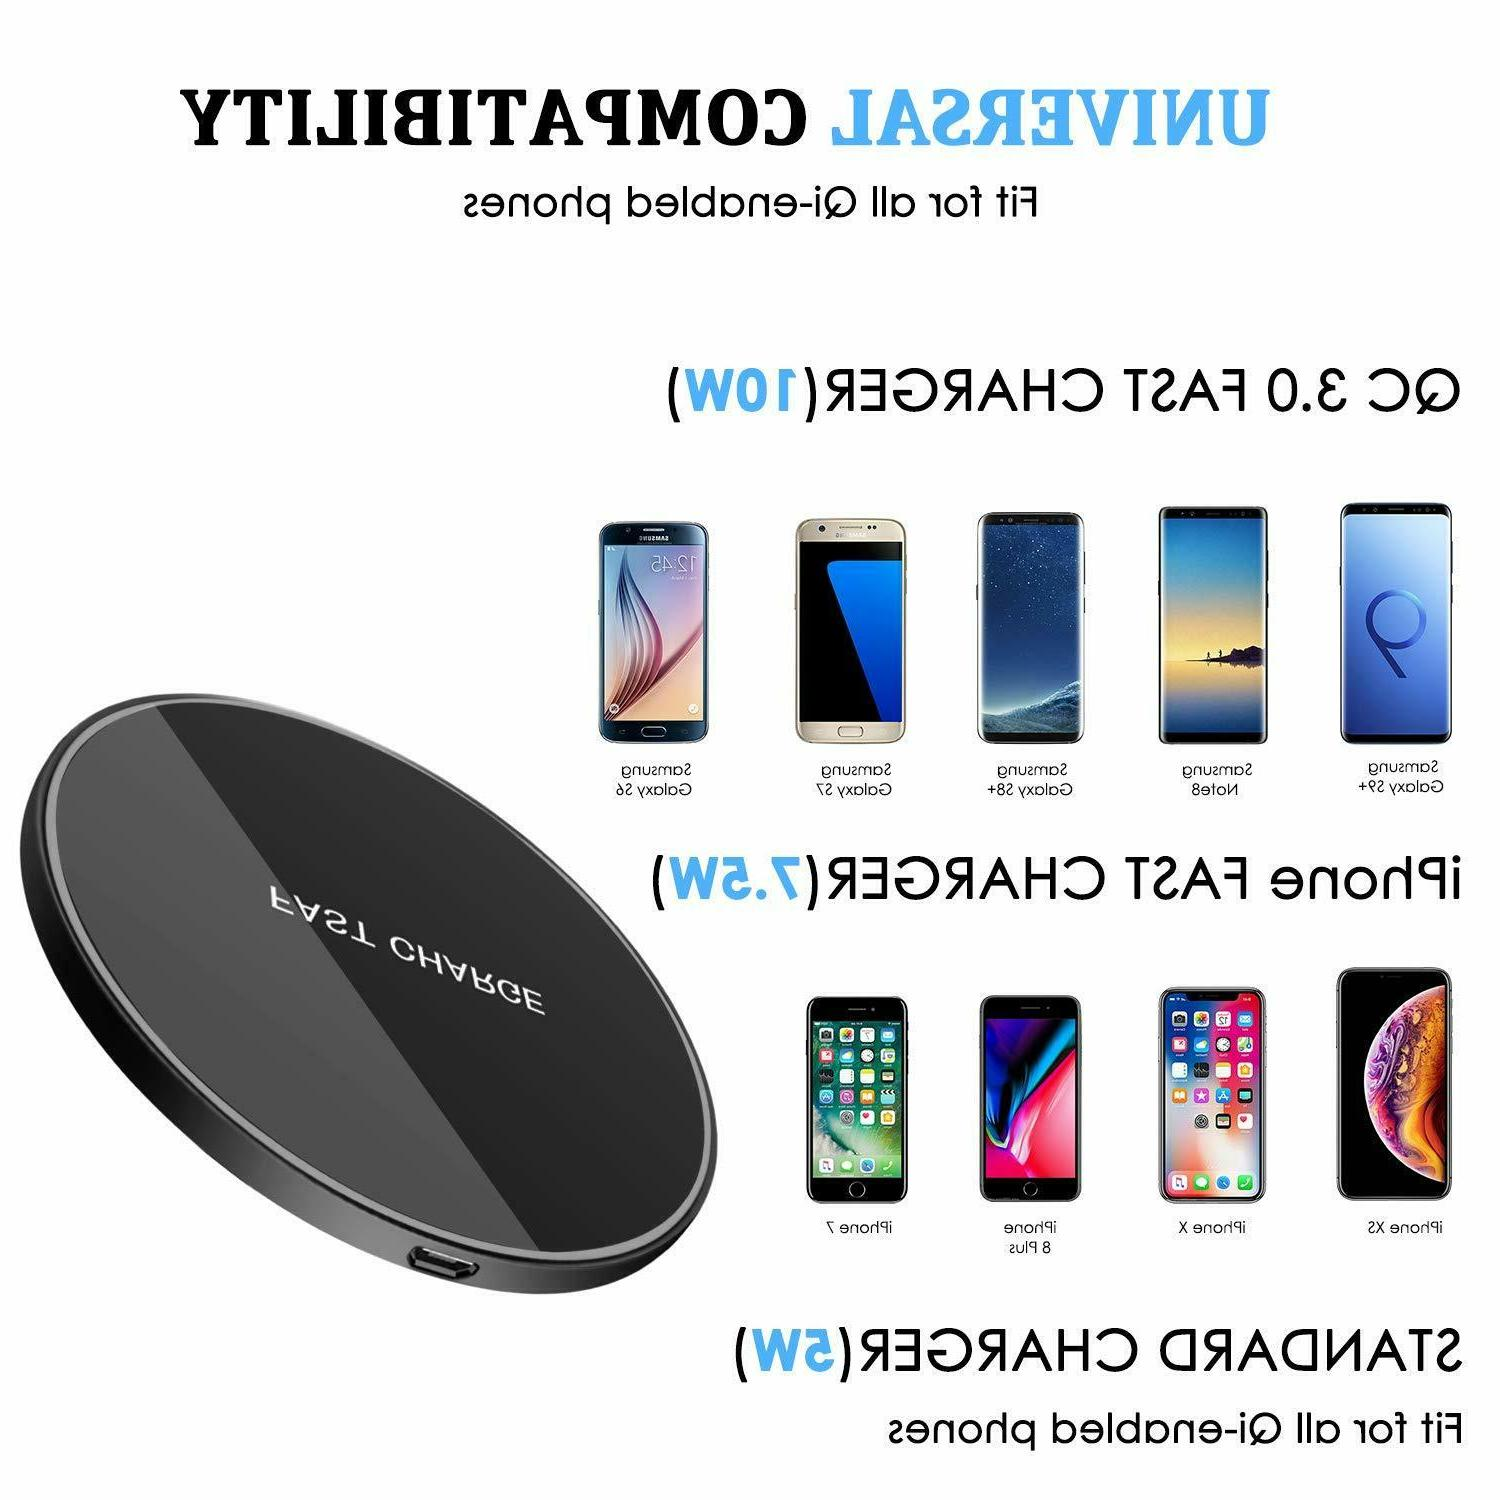 Qi Wireless Fast Charging Pad Iphone Samsung Galaxy Note 8 S8 S7